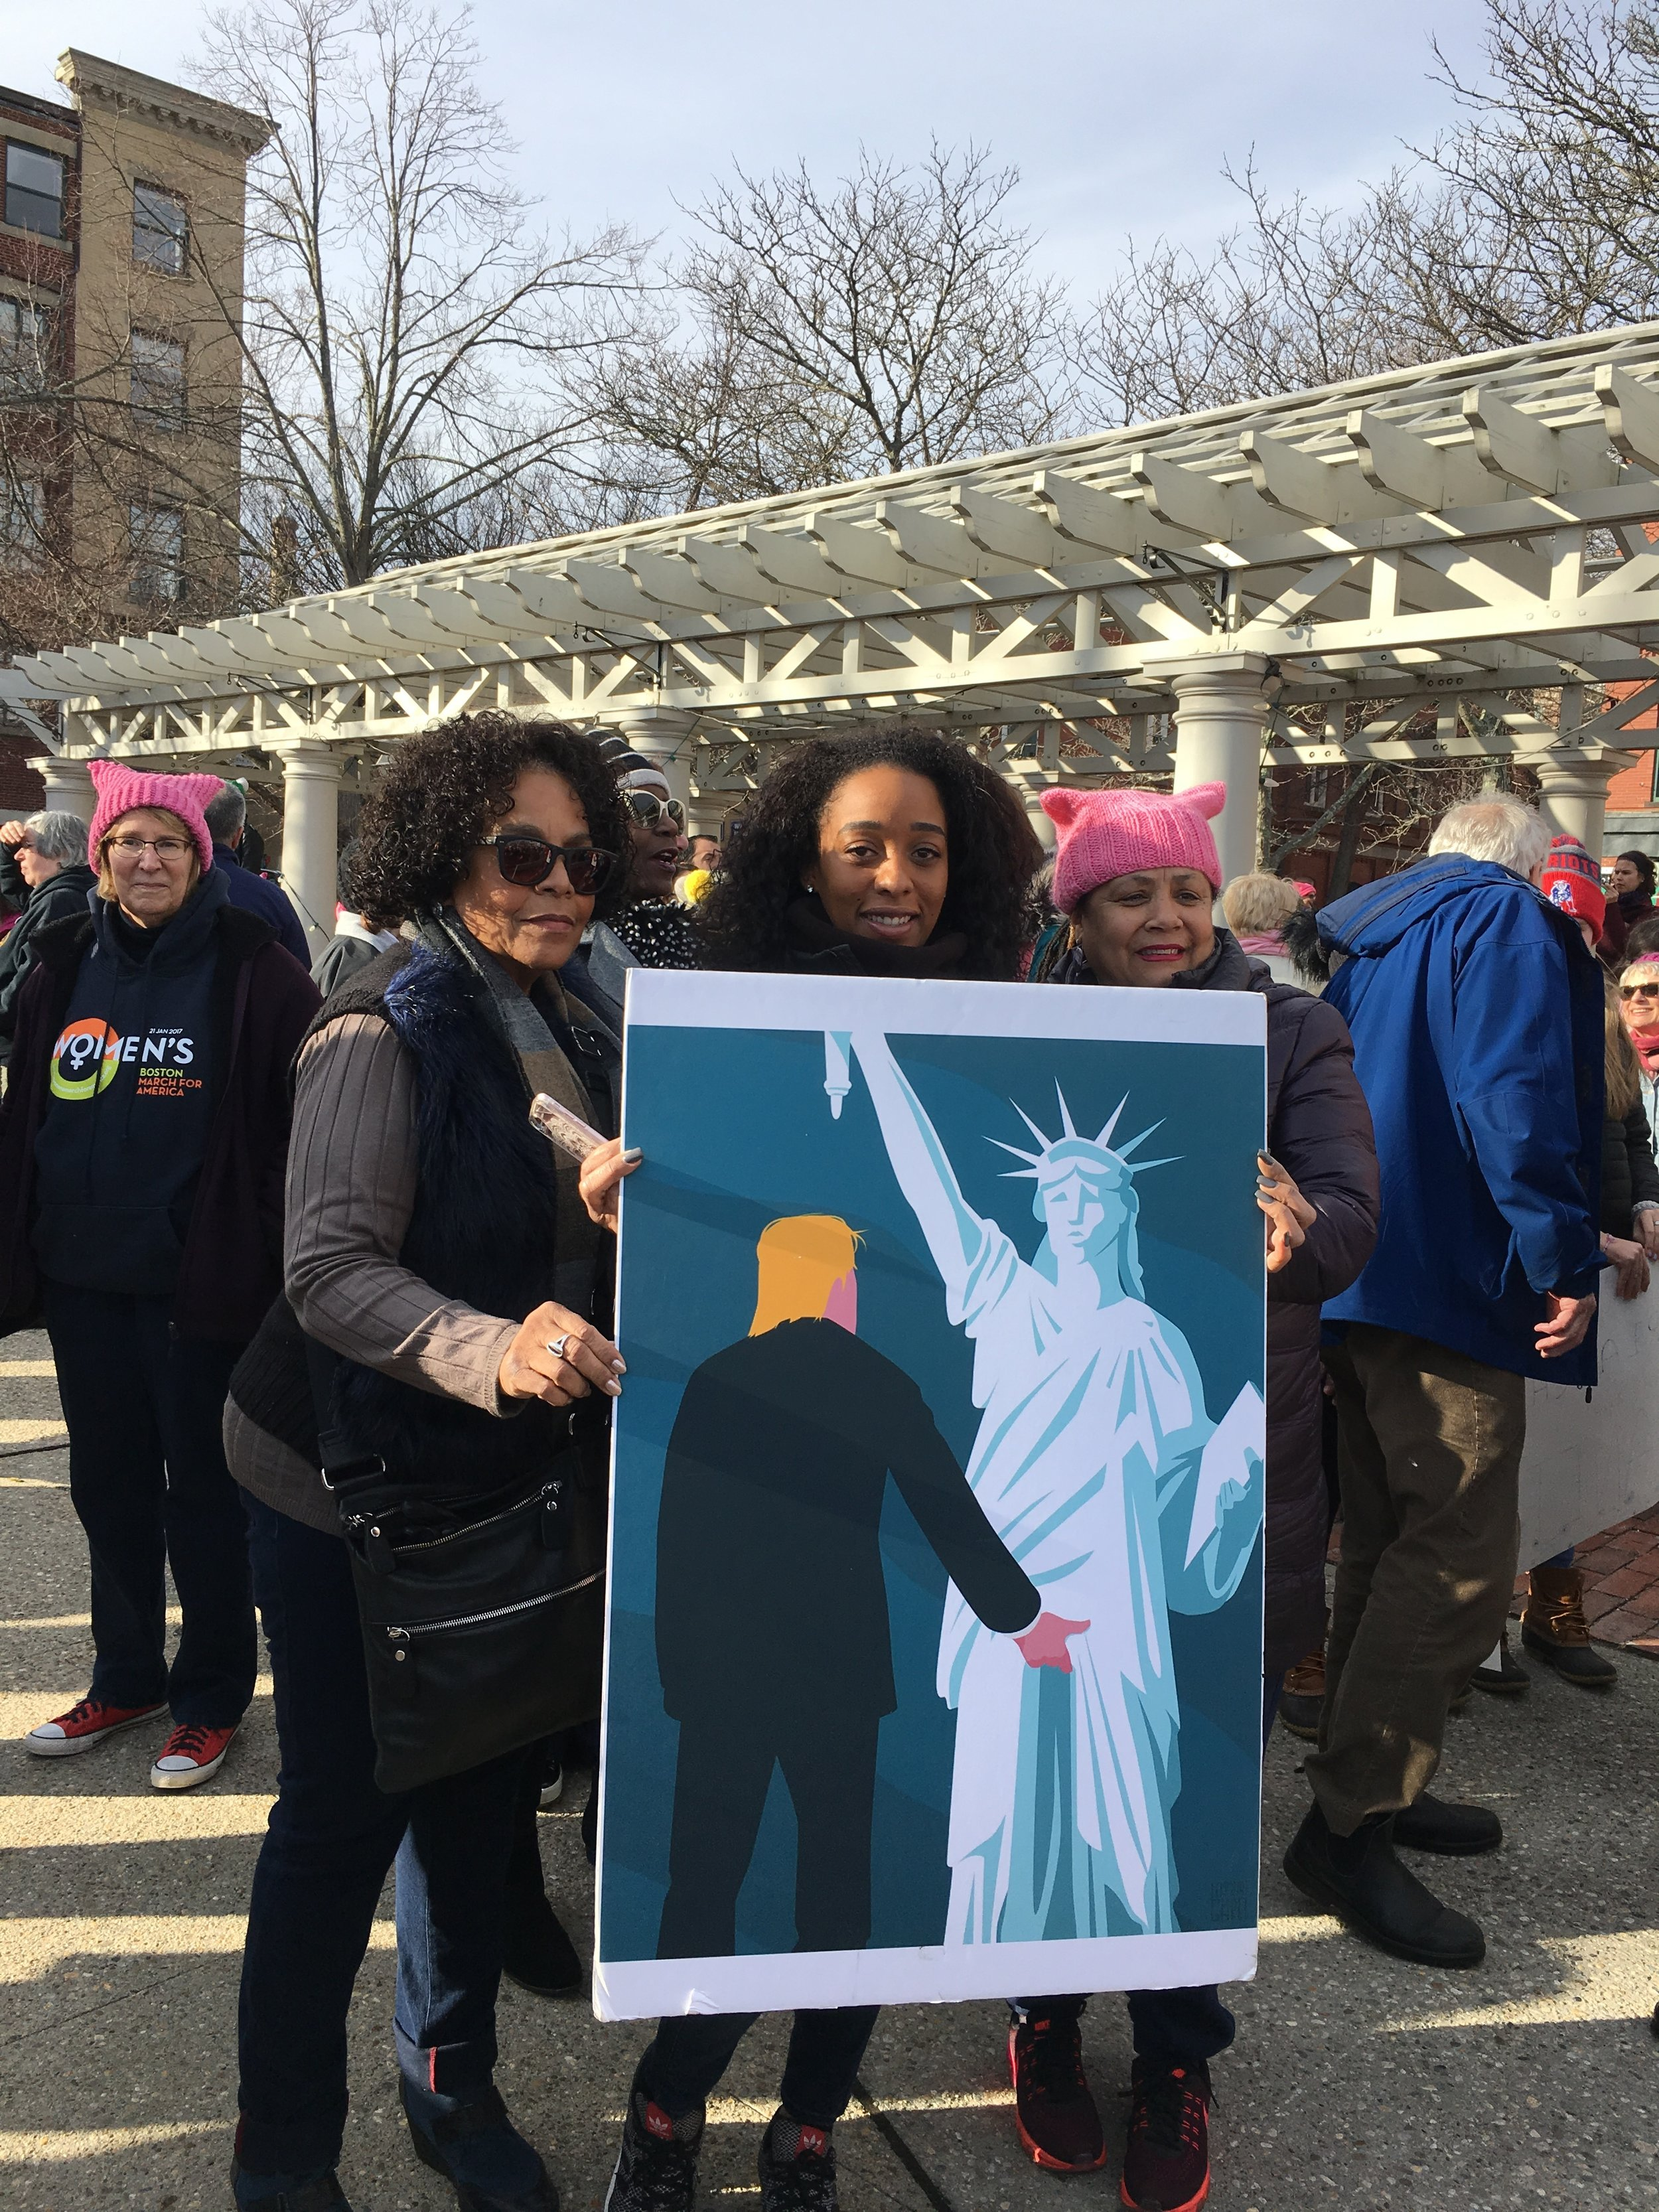 Our own Carole Ferguson showed up with this poster. It was with her at the March in NYC a year ago. Seems everyone in New Bedford wanted their picture taken with it!